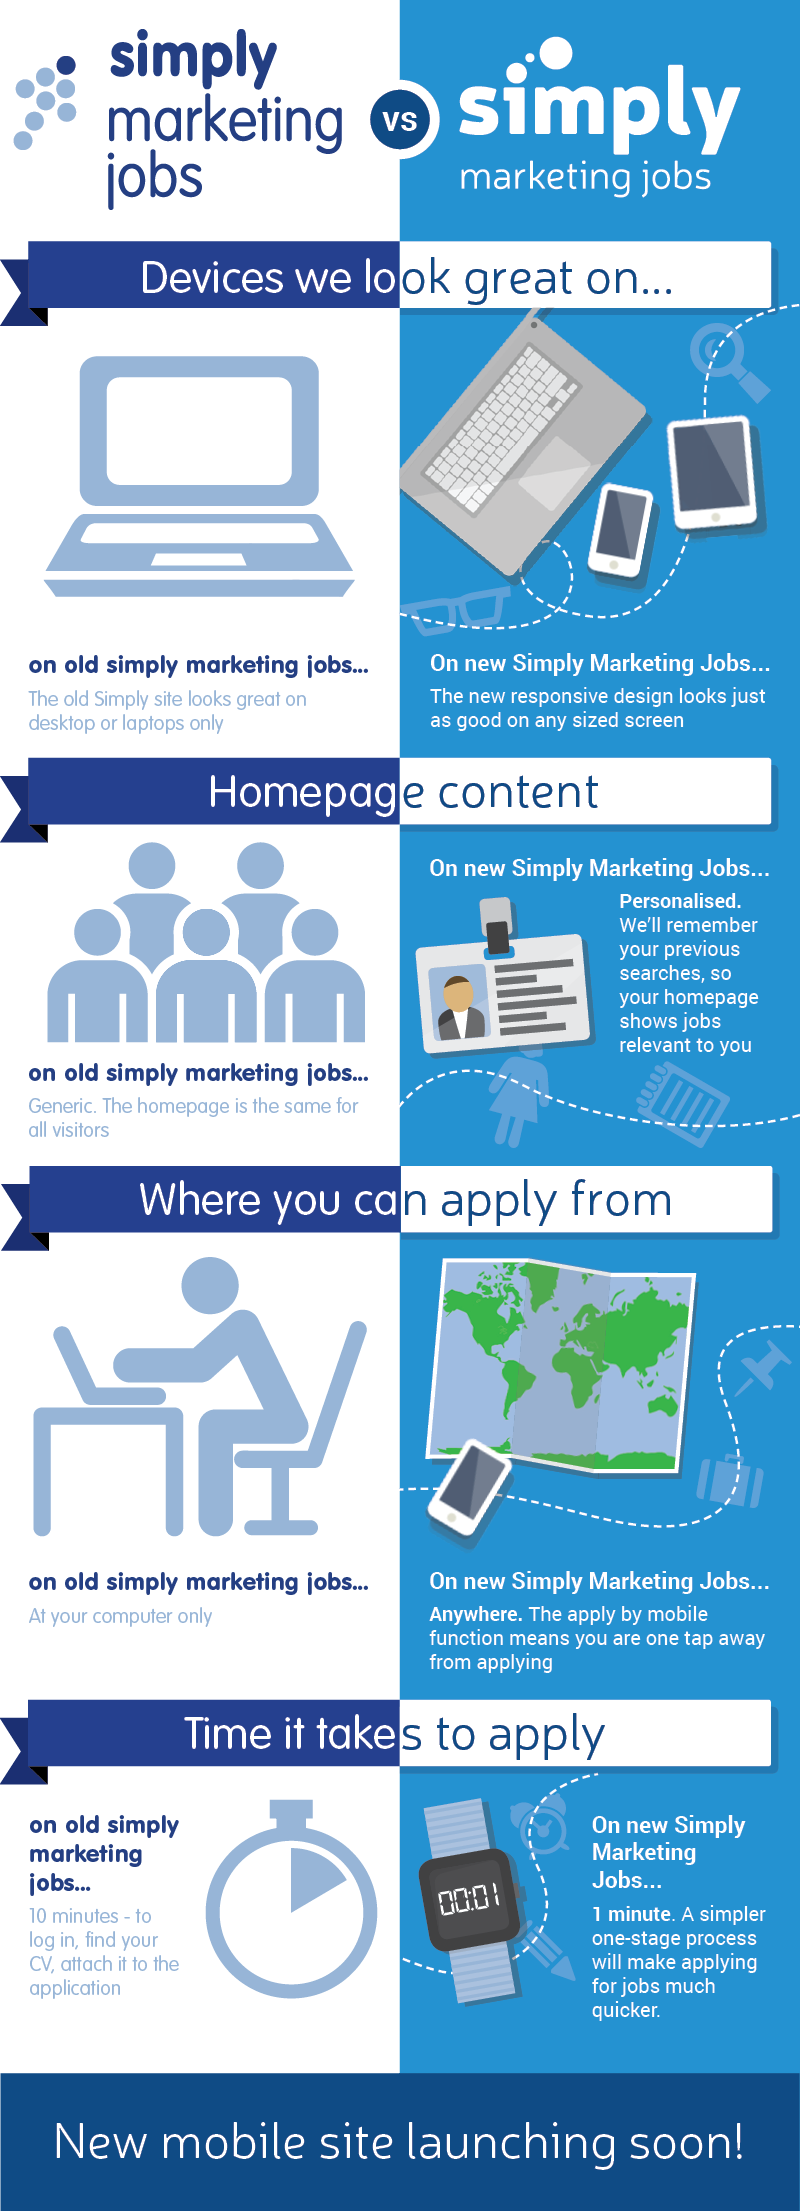 Simply Marketing Jobs, Author at Simply Marketing Jobs Marketing Jobs